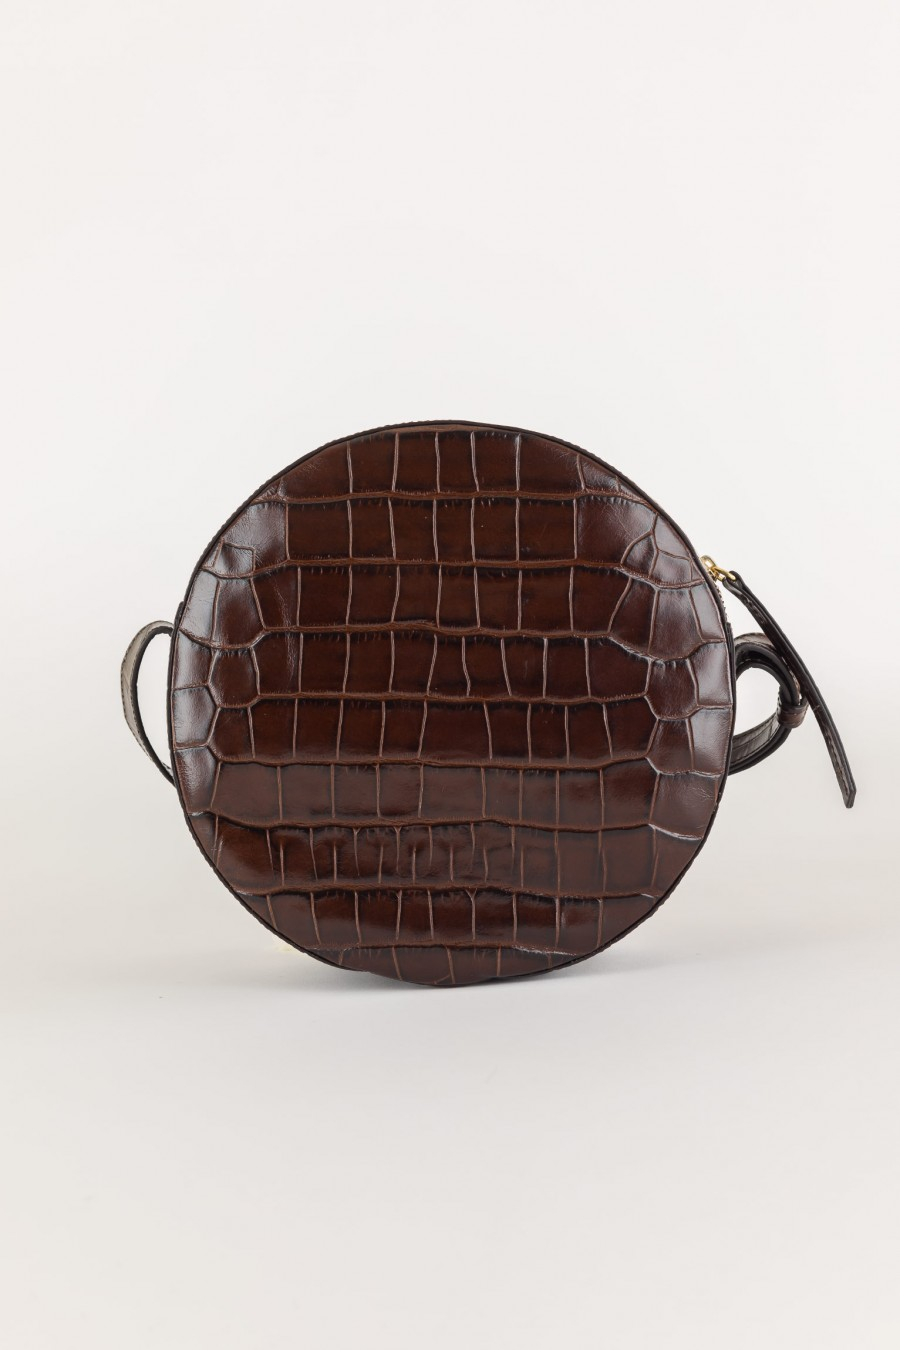 made in italy crocodile effect round bag